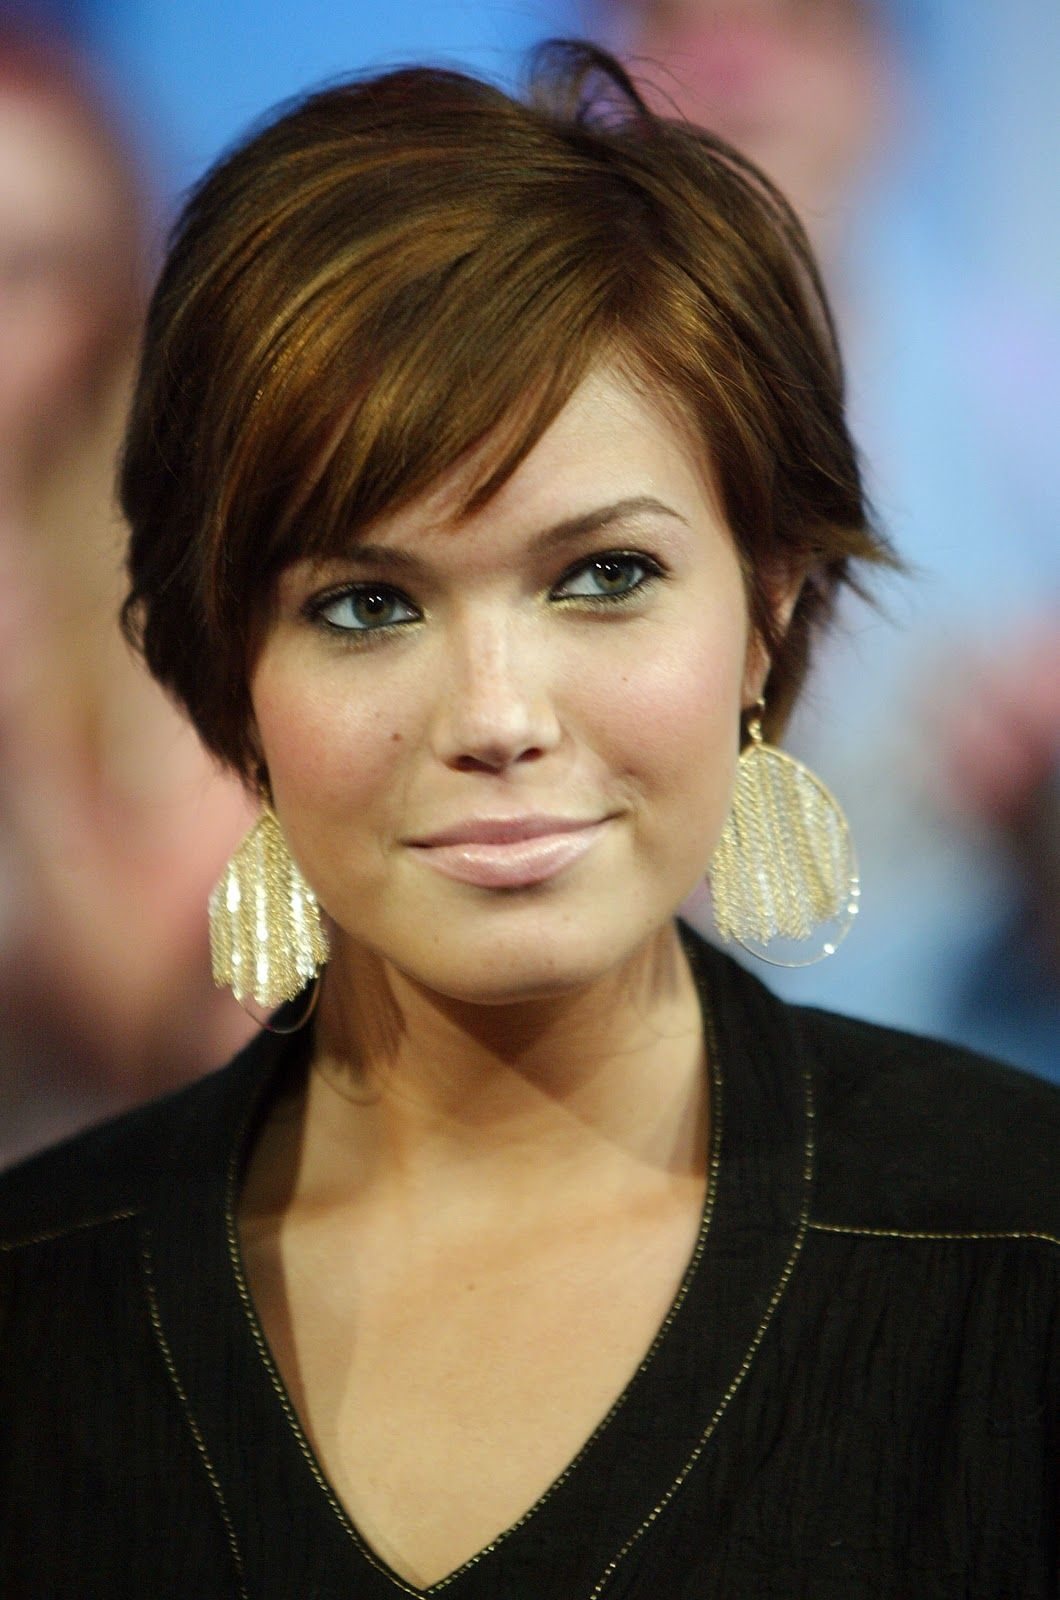 justifying shopaholism. : hair style: hair cut for round face